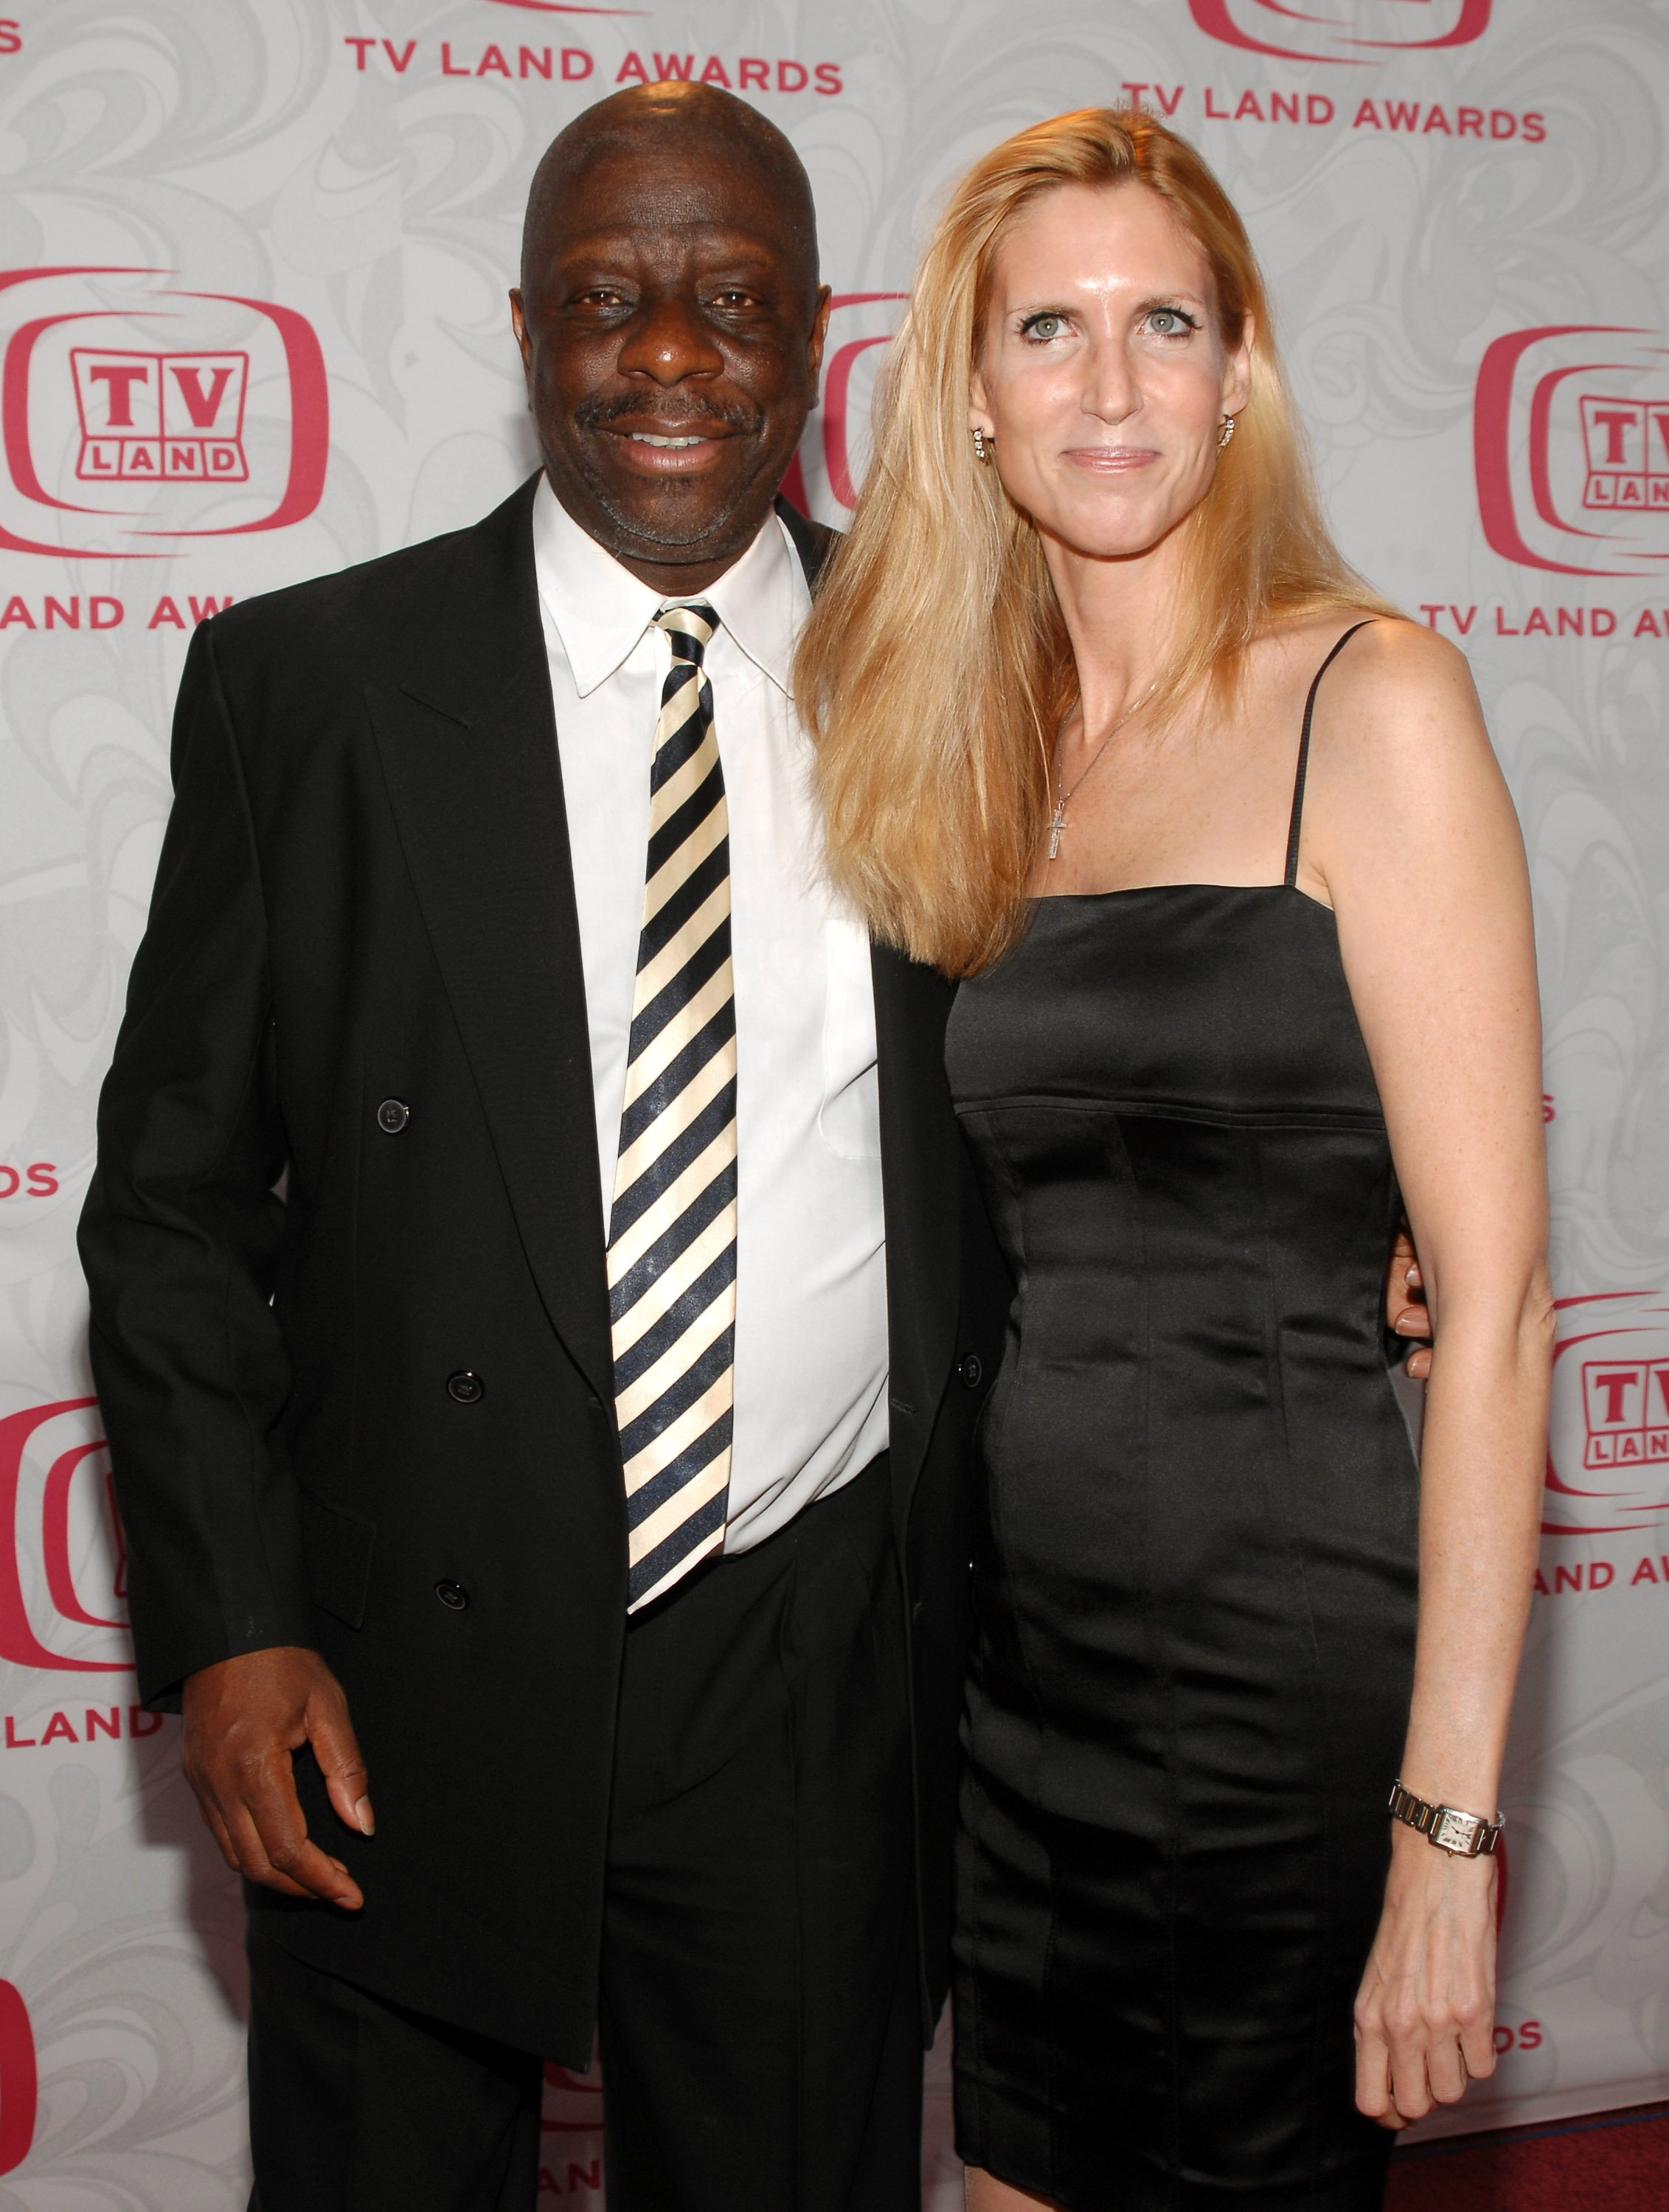 Jimmie Walker and Ann Coulter during the 5th Annual TV Land Awards at Barker Hanger on April 22, 2007 in Santa Monica, California | Photo: Getty Images